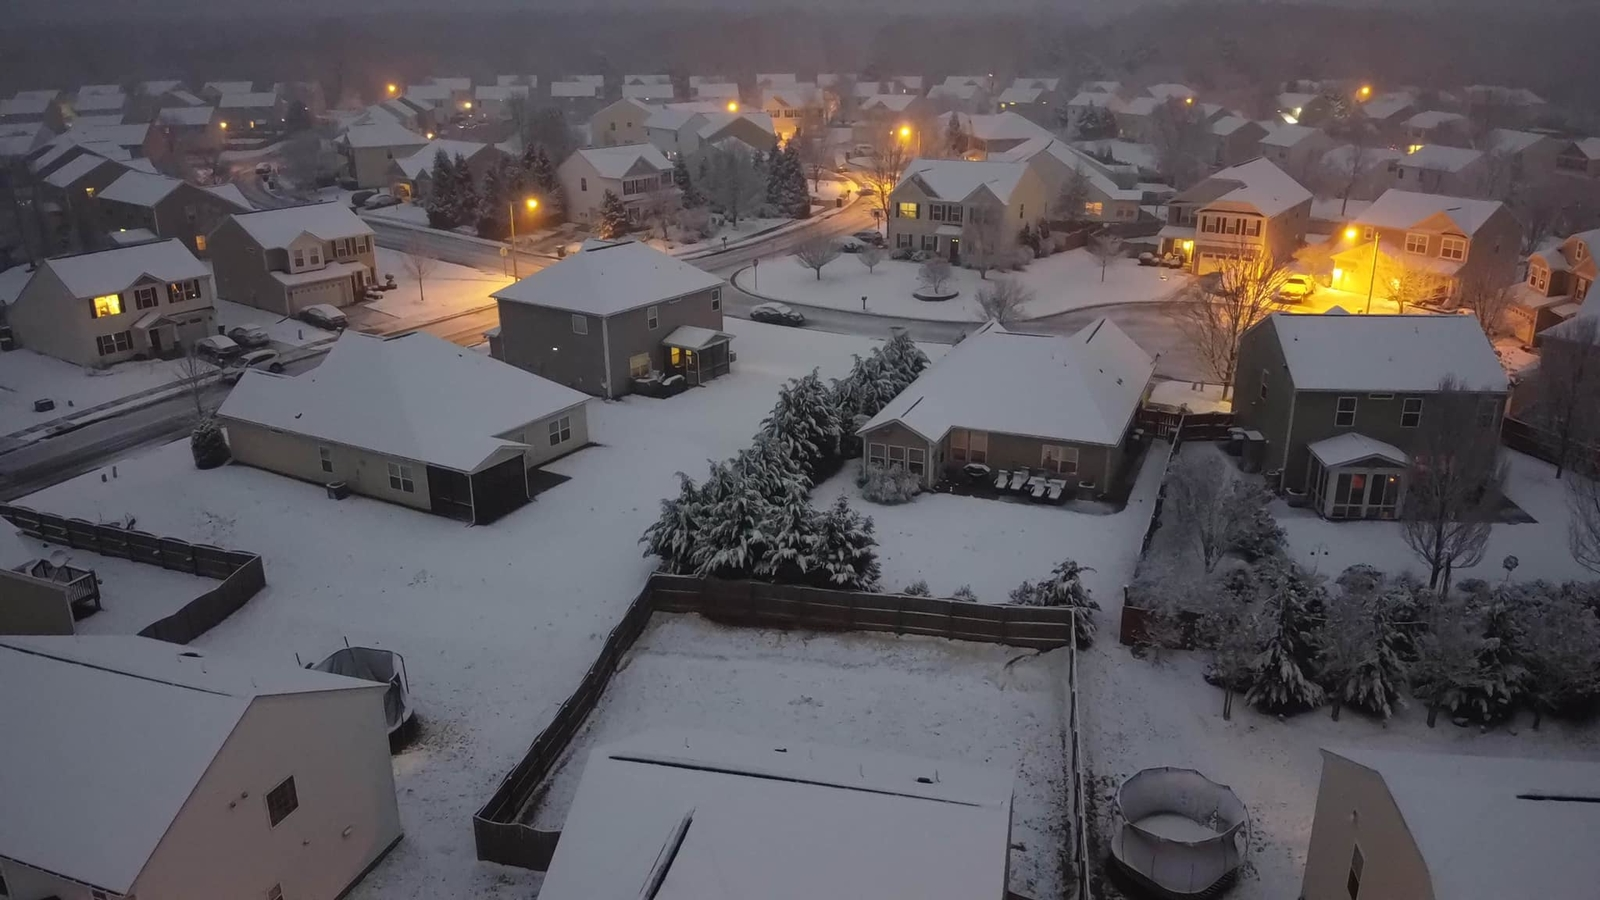 NC weather: Snow forecast brings Winter Storm Warning to parts of North Carolina 1